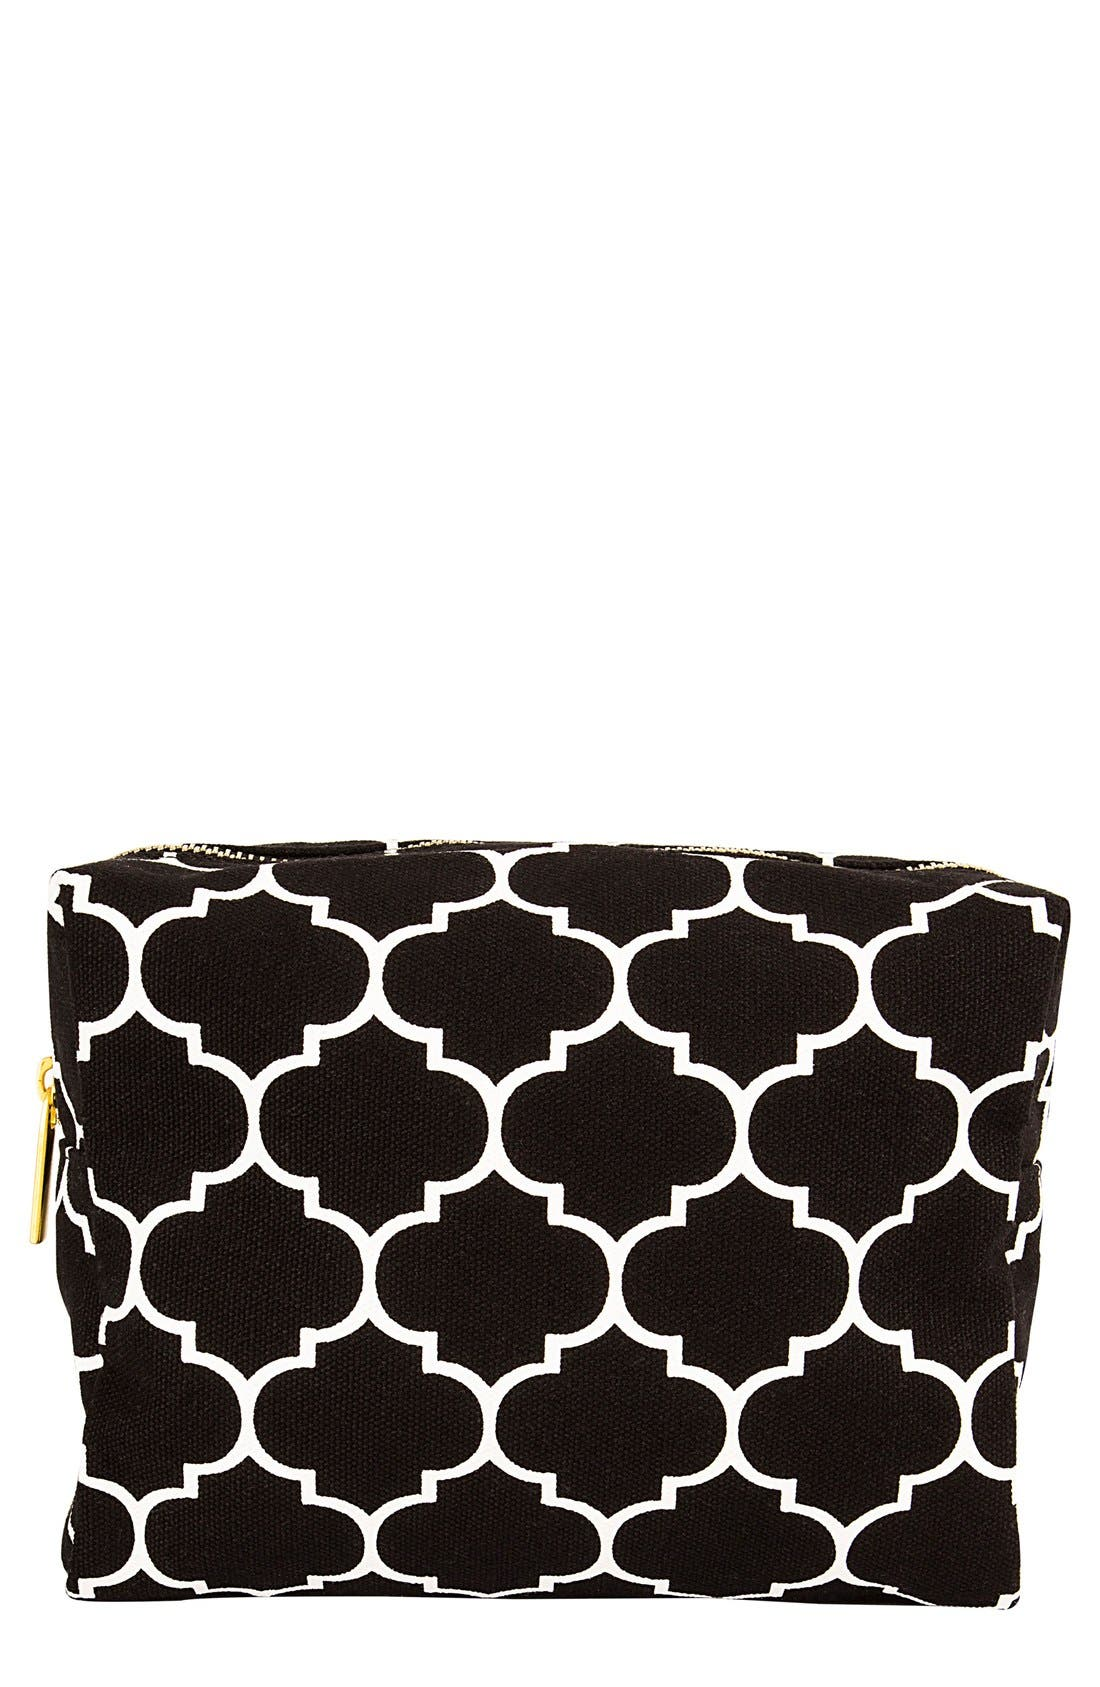 Monogram Cosmetics Bag,                         Main,                         color, 001